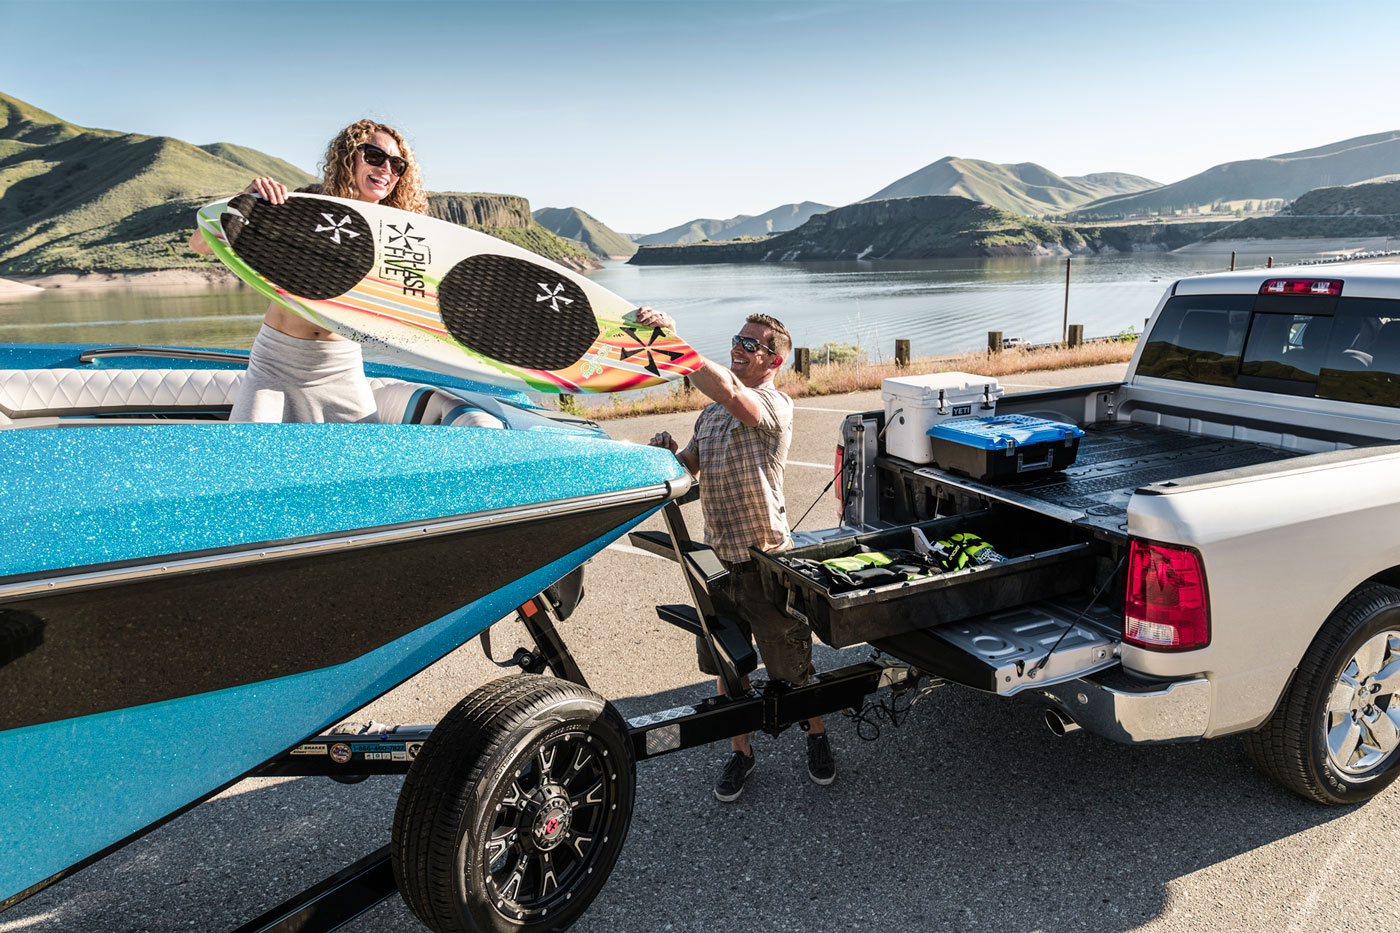 Now boaters can have a deck in their truck as well